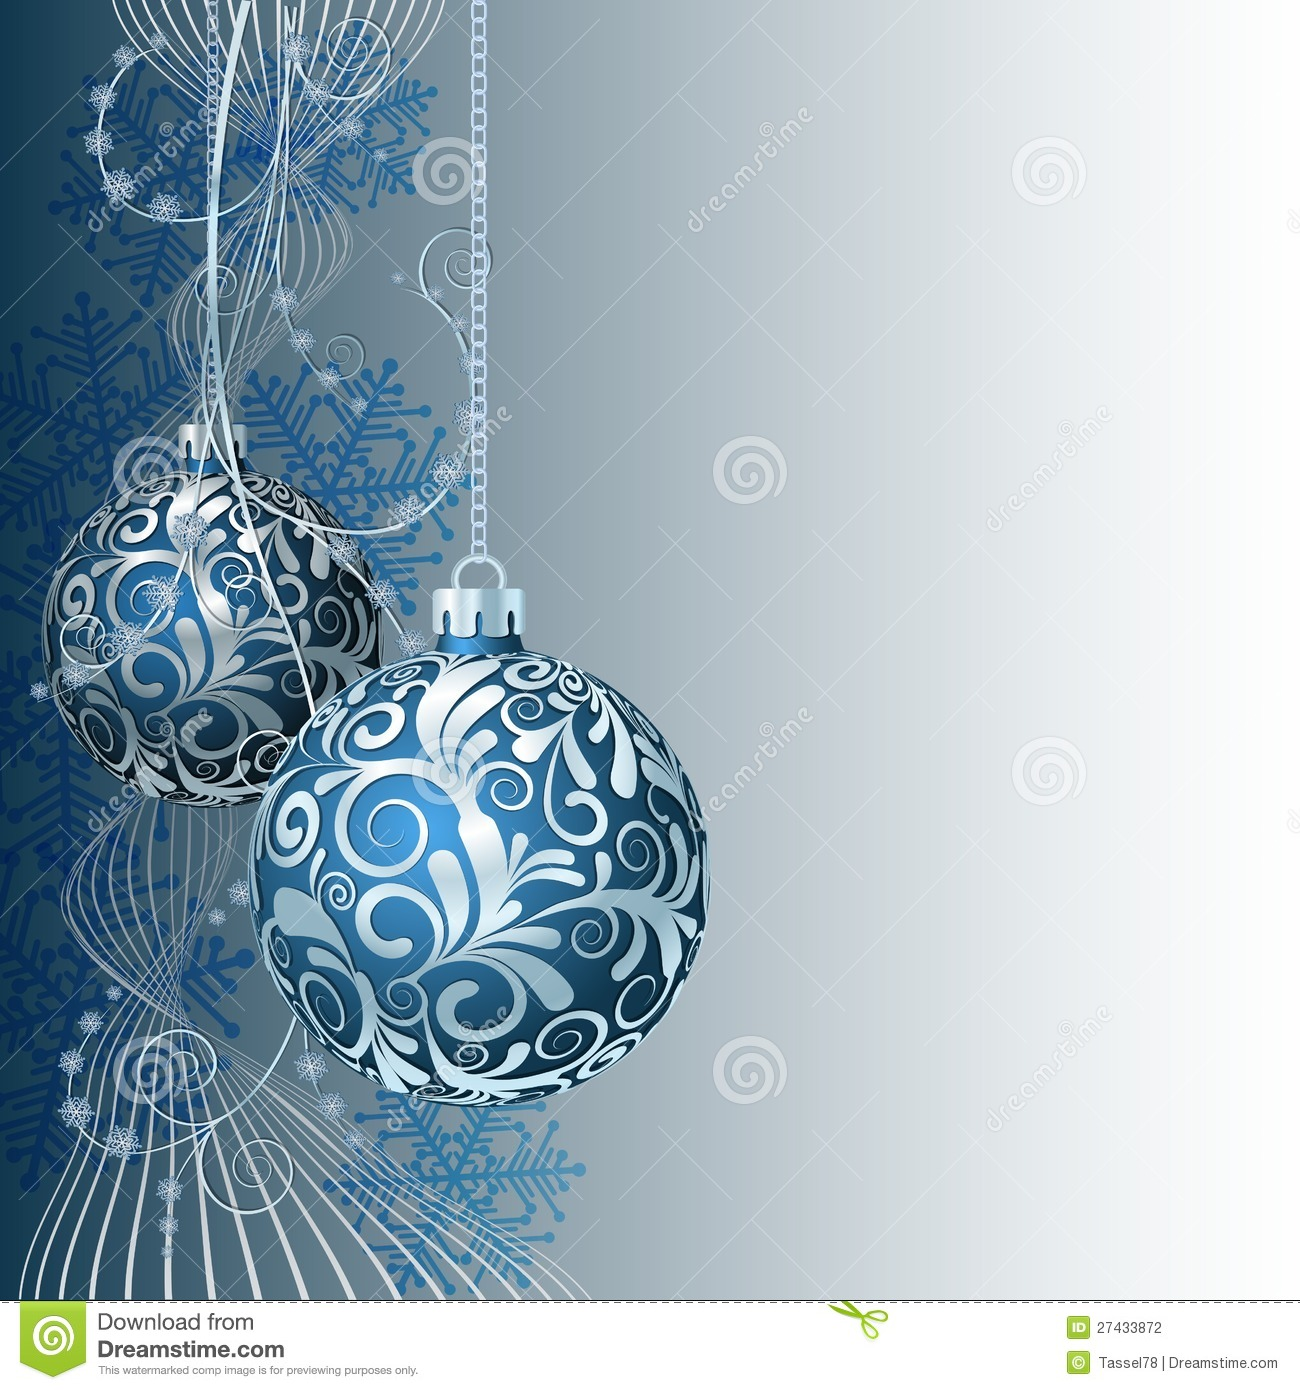 Blue Christmas card stock vector. Illustration of elements - 27433872